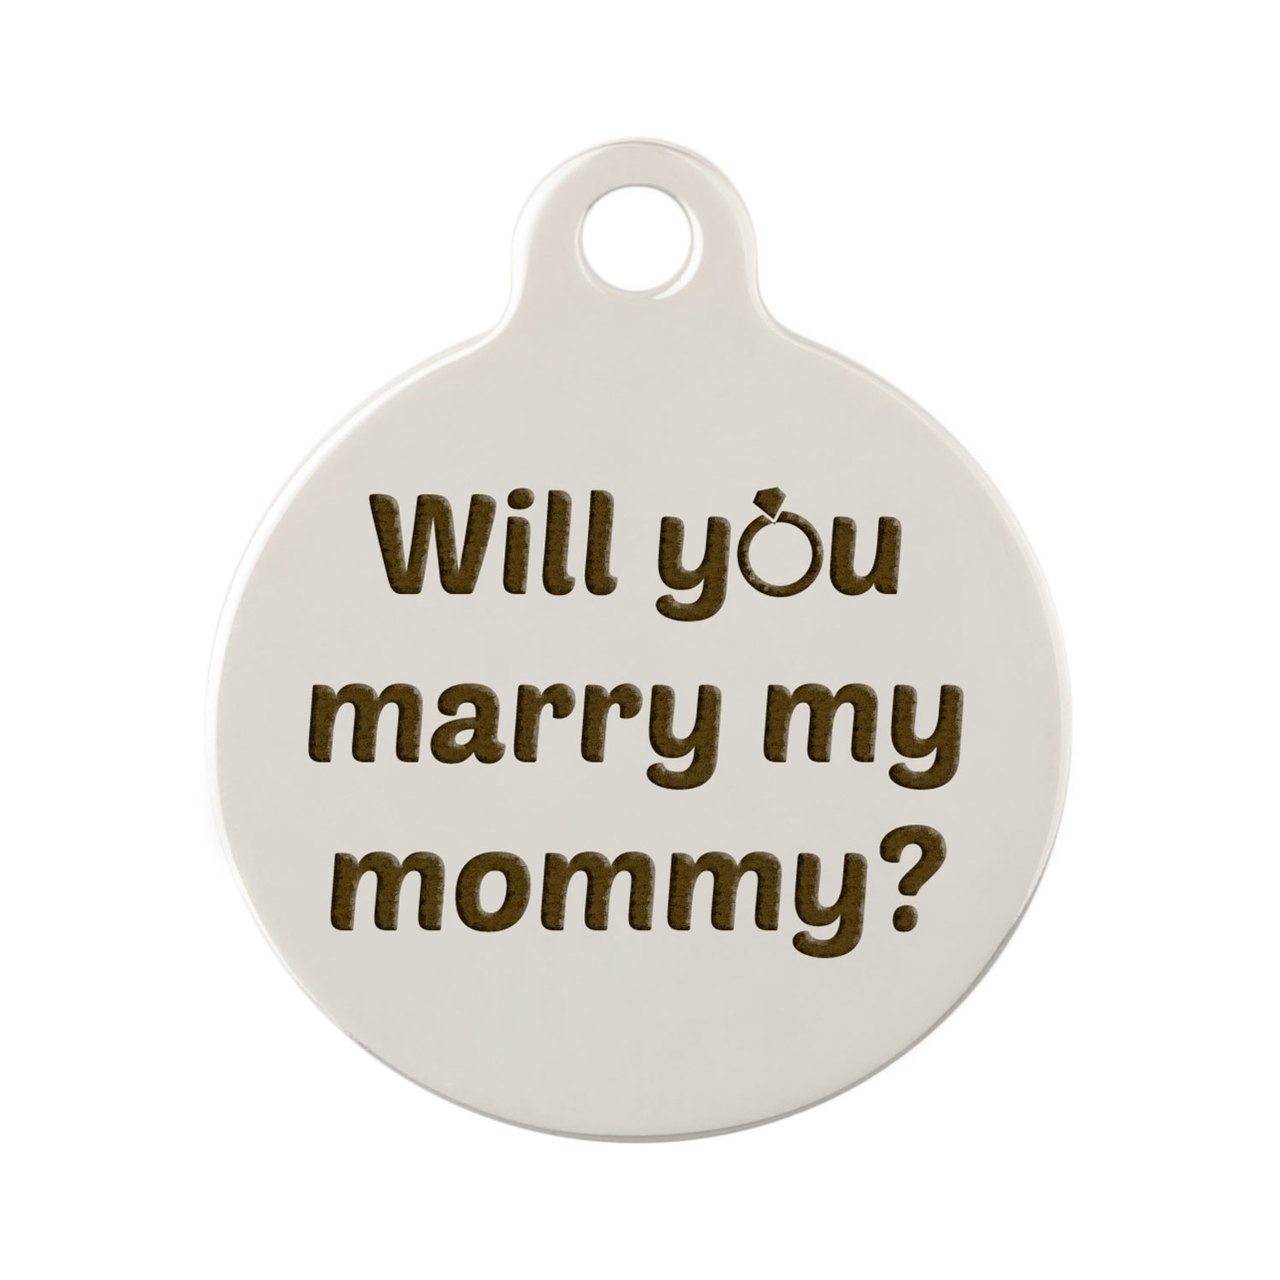 Signature Proposal Dog ID Tags - Will You Marry my Mommy? Nickel Plated